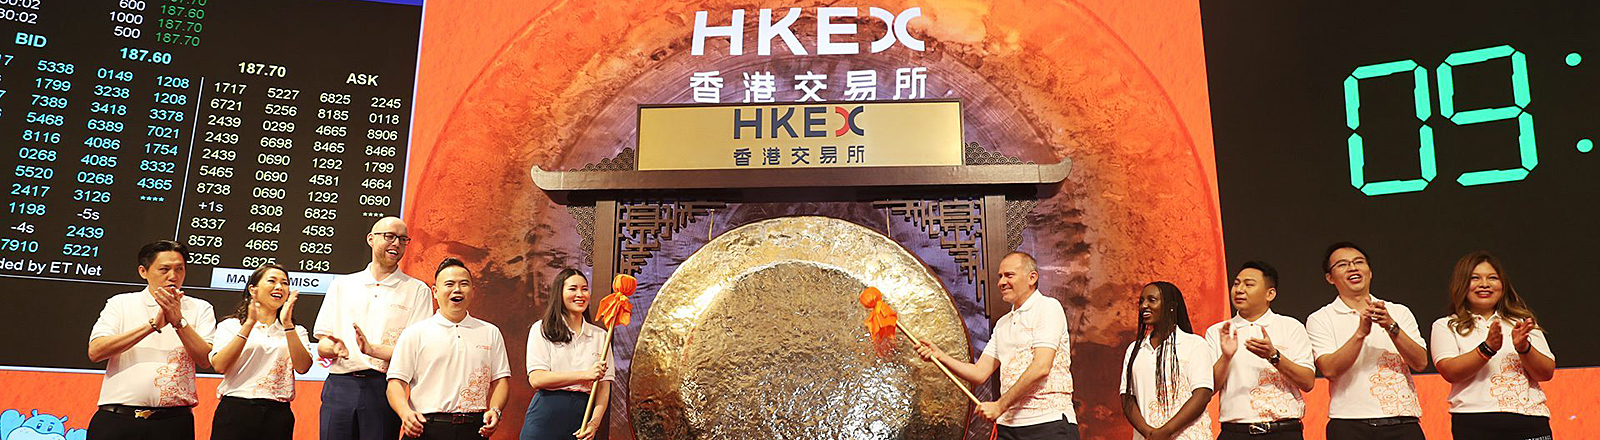 Ten global partners of Alibaba beat the gong during the Alibaba Group Holding's listing on the Hong Kong Exchanges and Clearing Market on November 26, 2019 in Hong Kong, China.